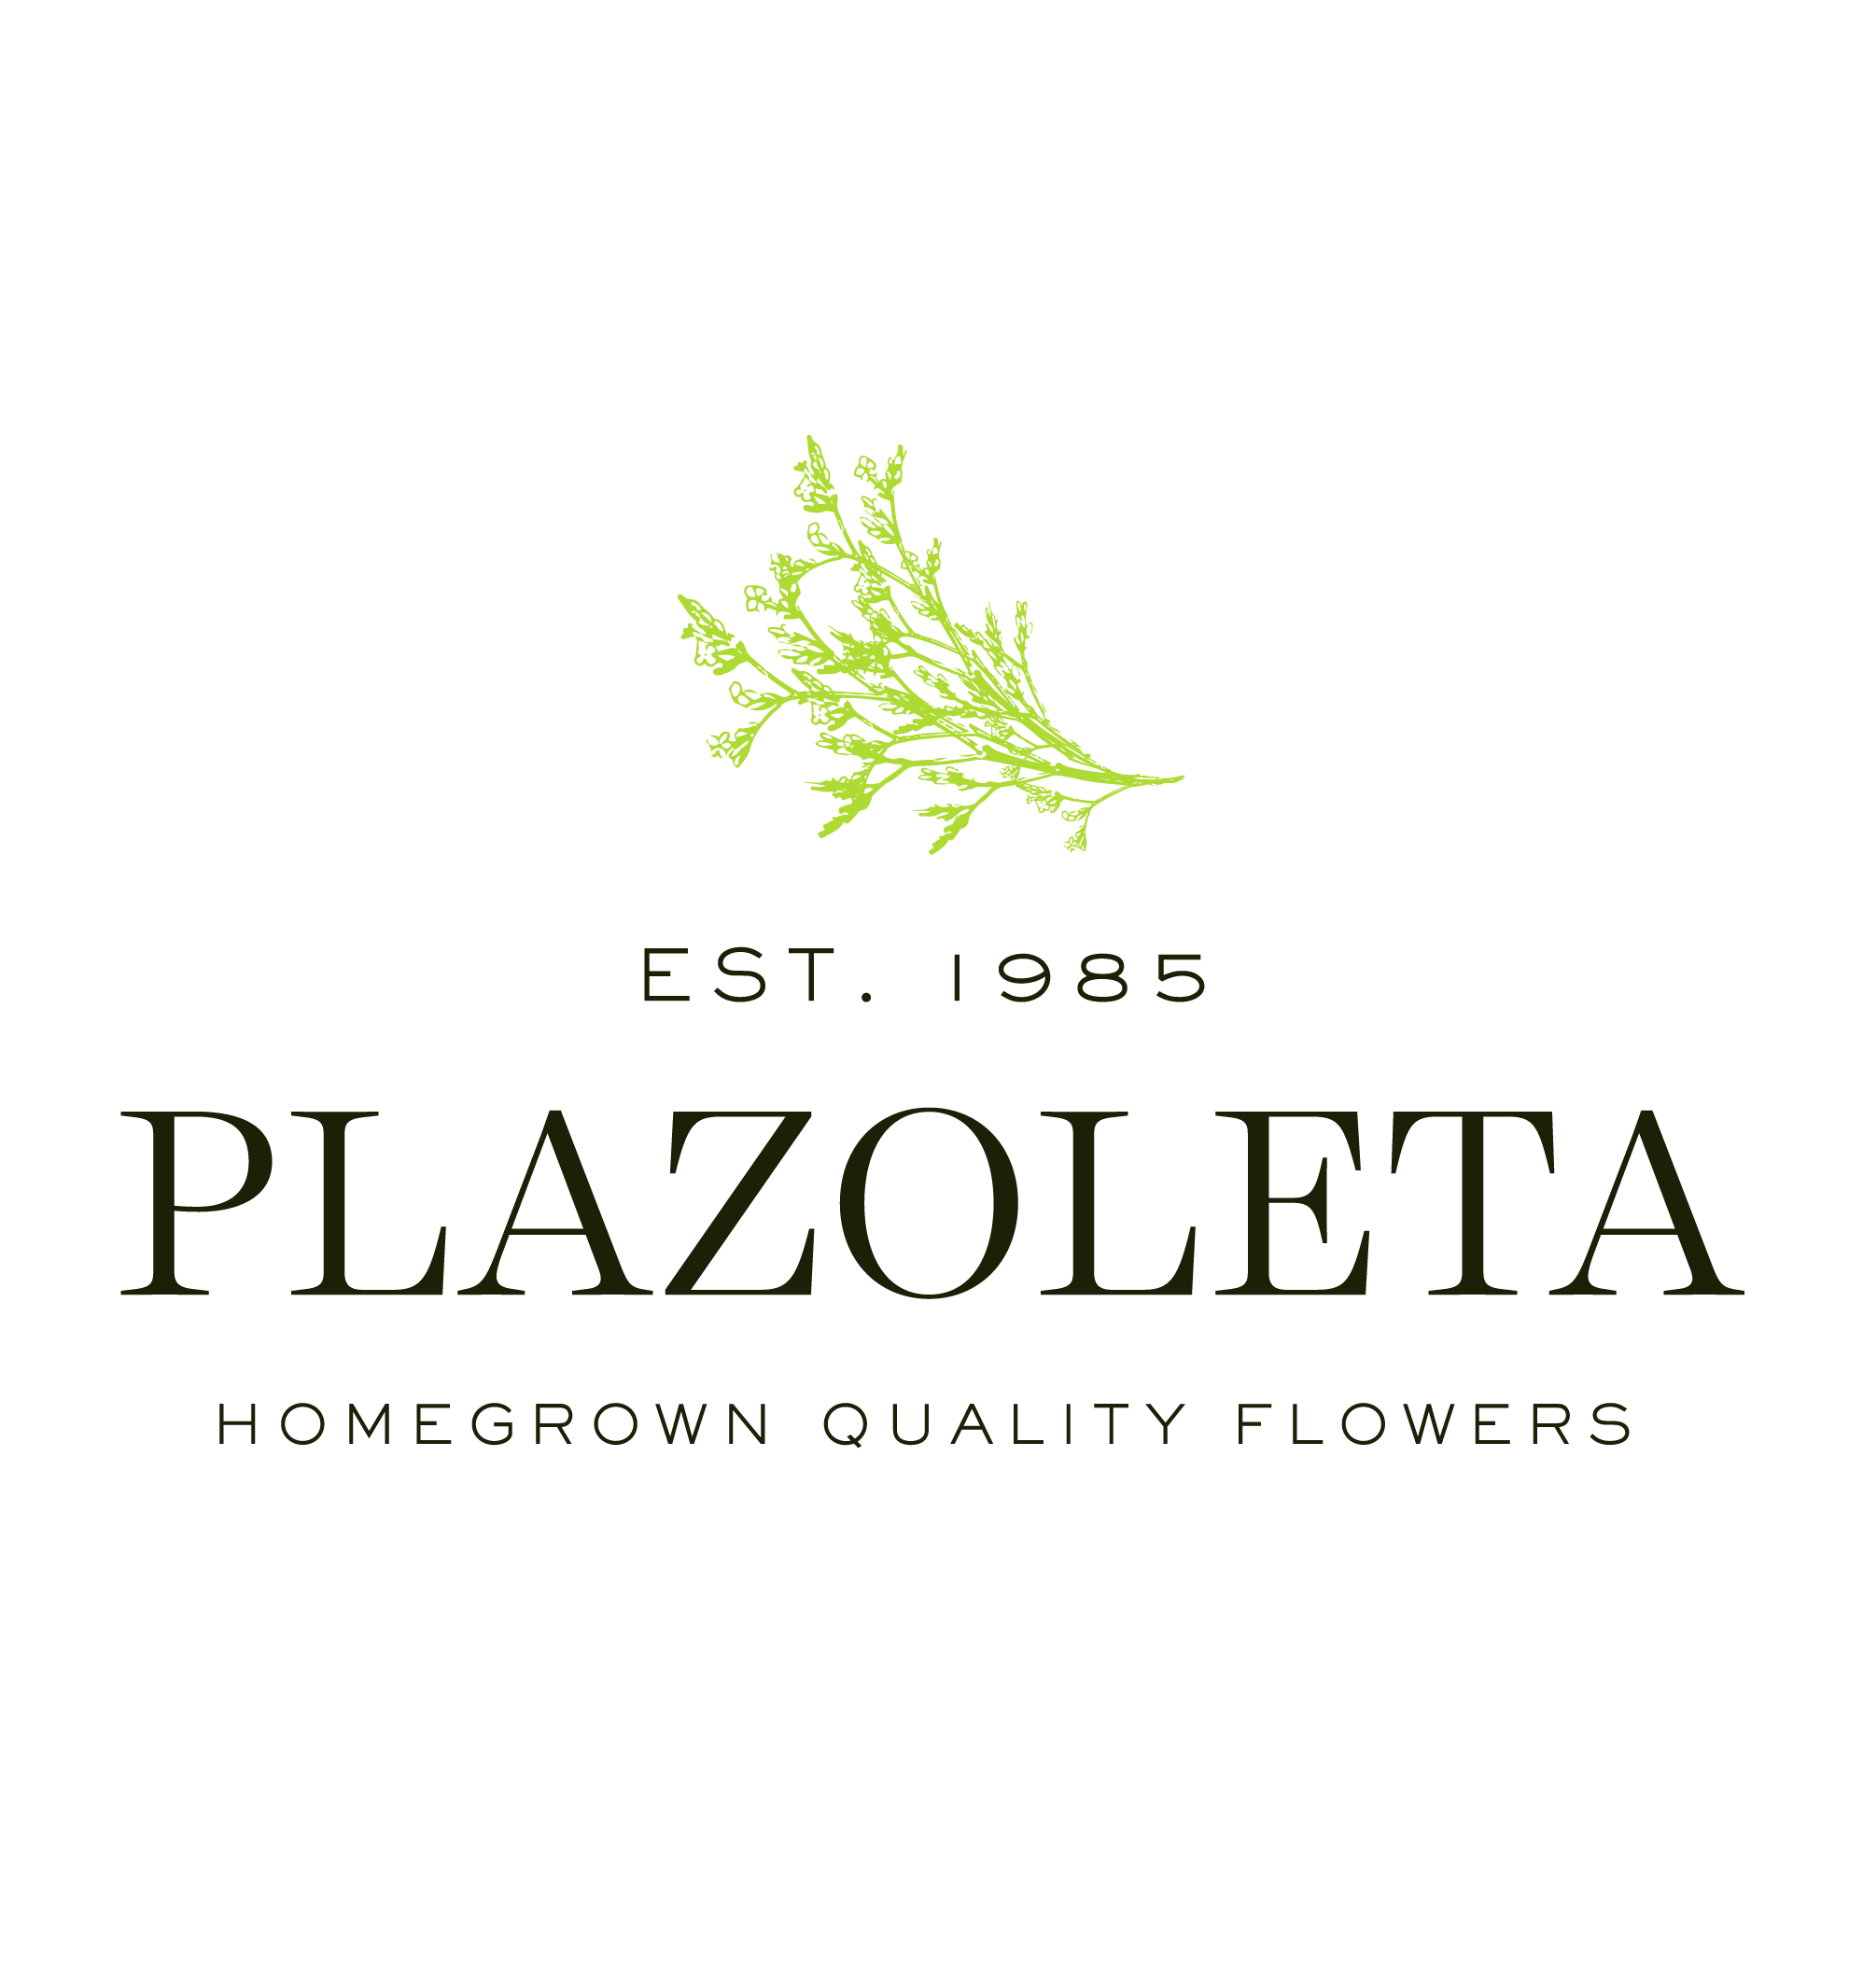 Plazoleta Flowers